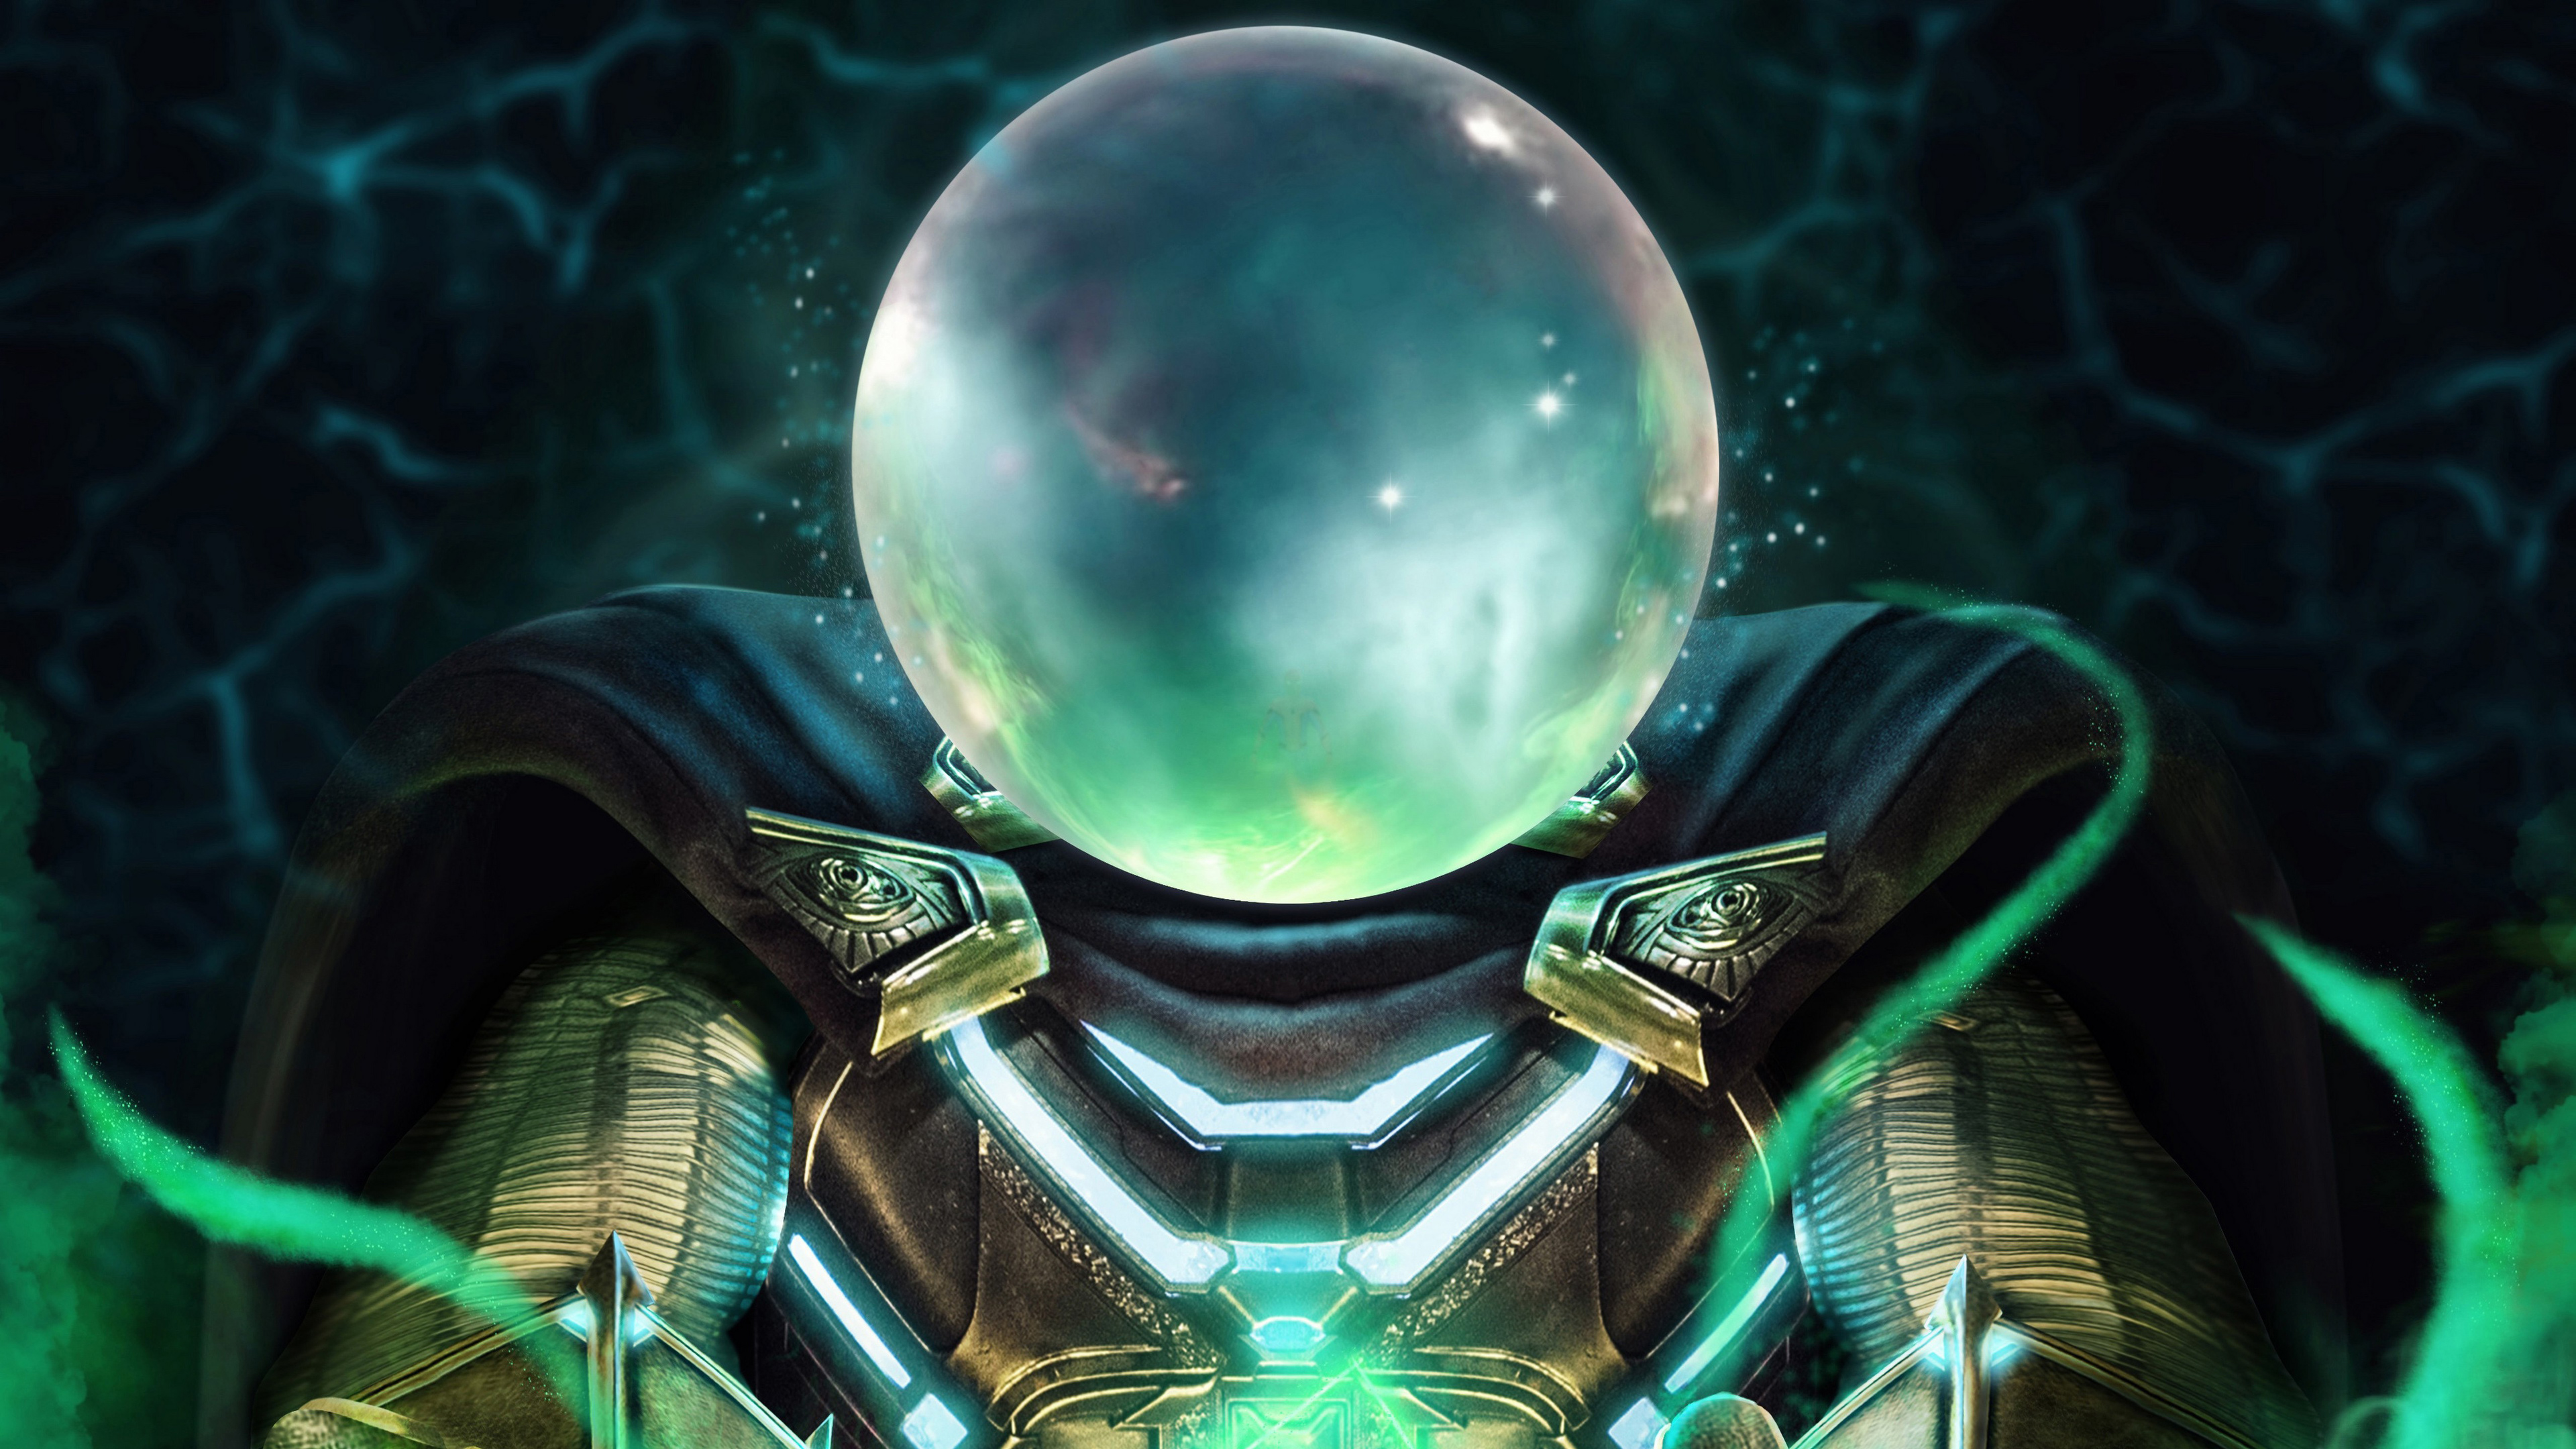 Mysterio Artwork 4k Hd Superheroes 4k Wallpapers Images Backgrounds Photos And Pictures